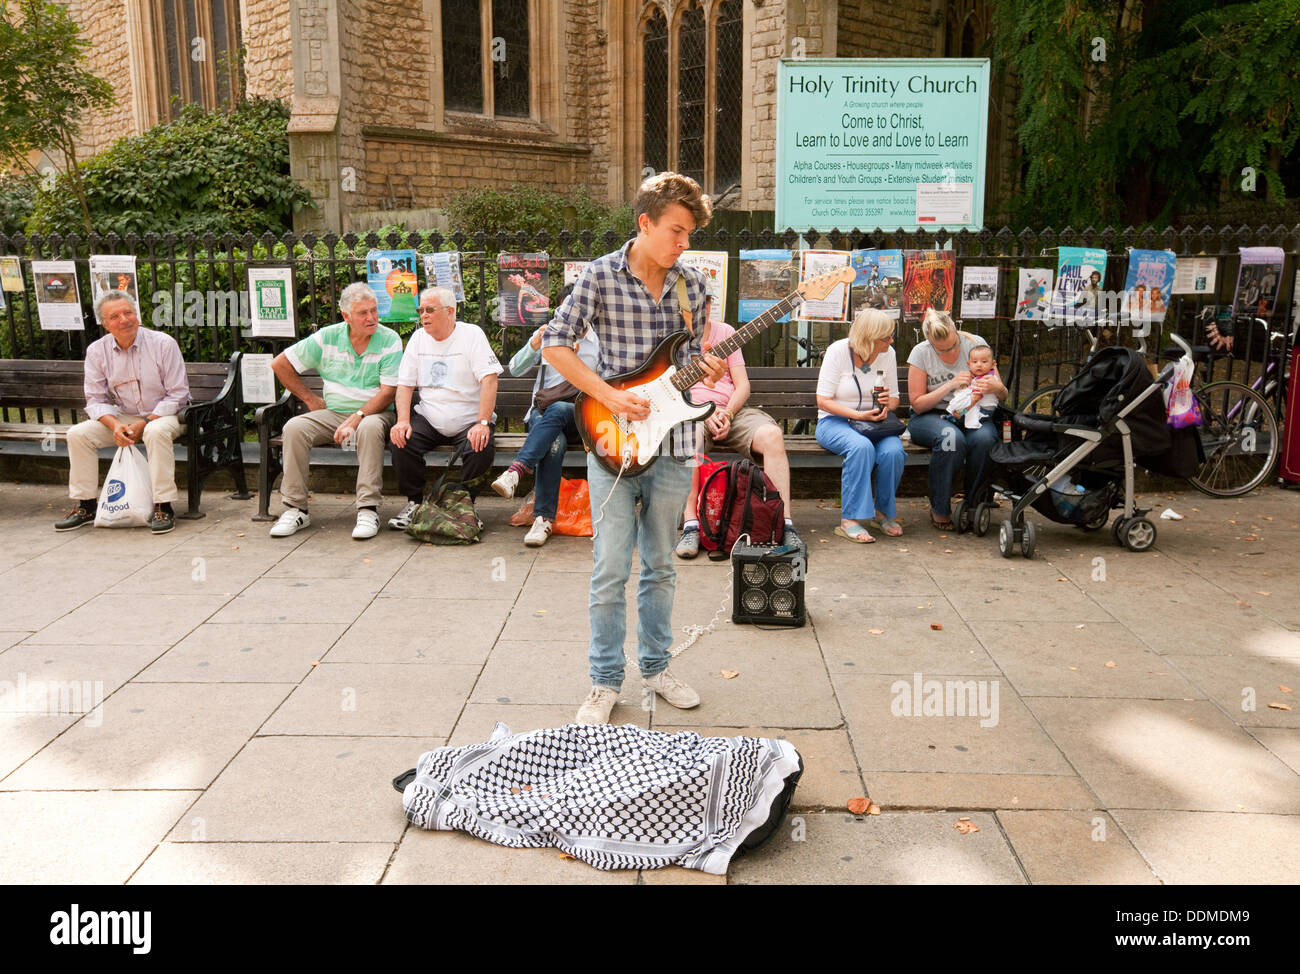 A street musician or busker, playing a guitar, St Andrews St, Cambridge city centre UK - Stock Image